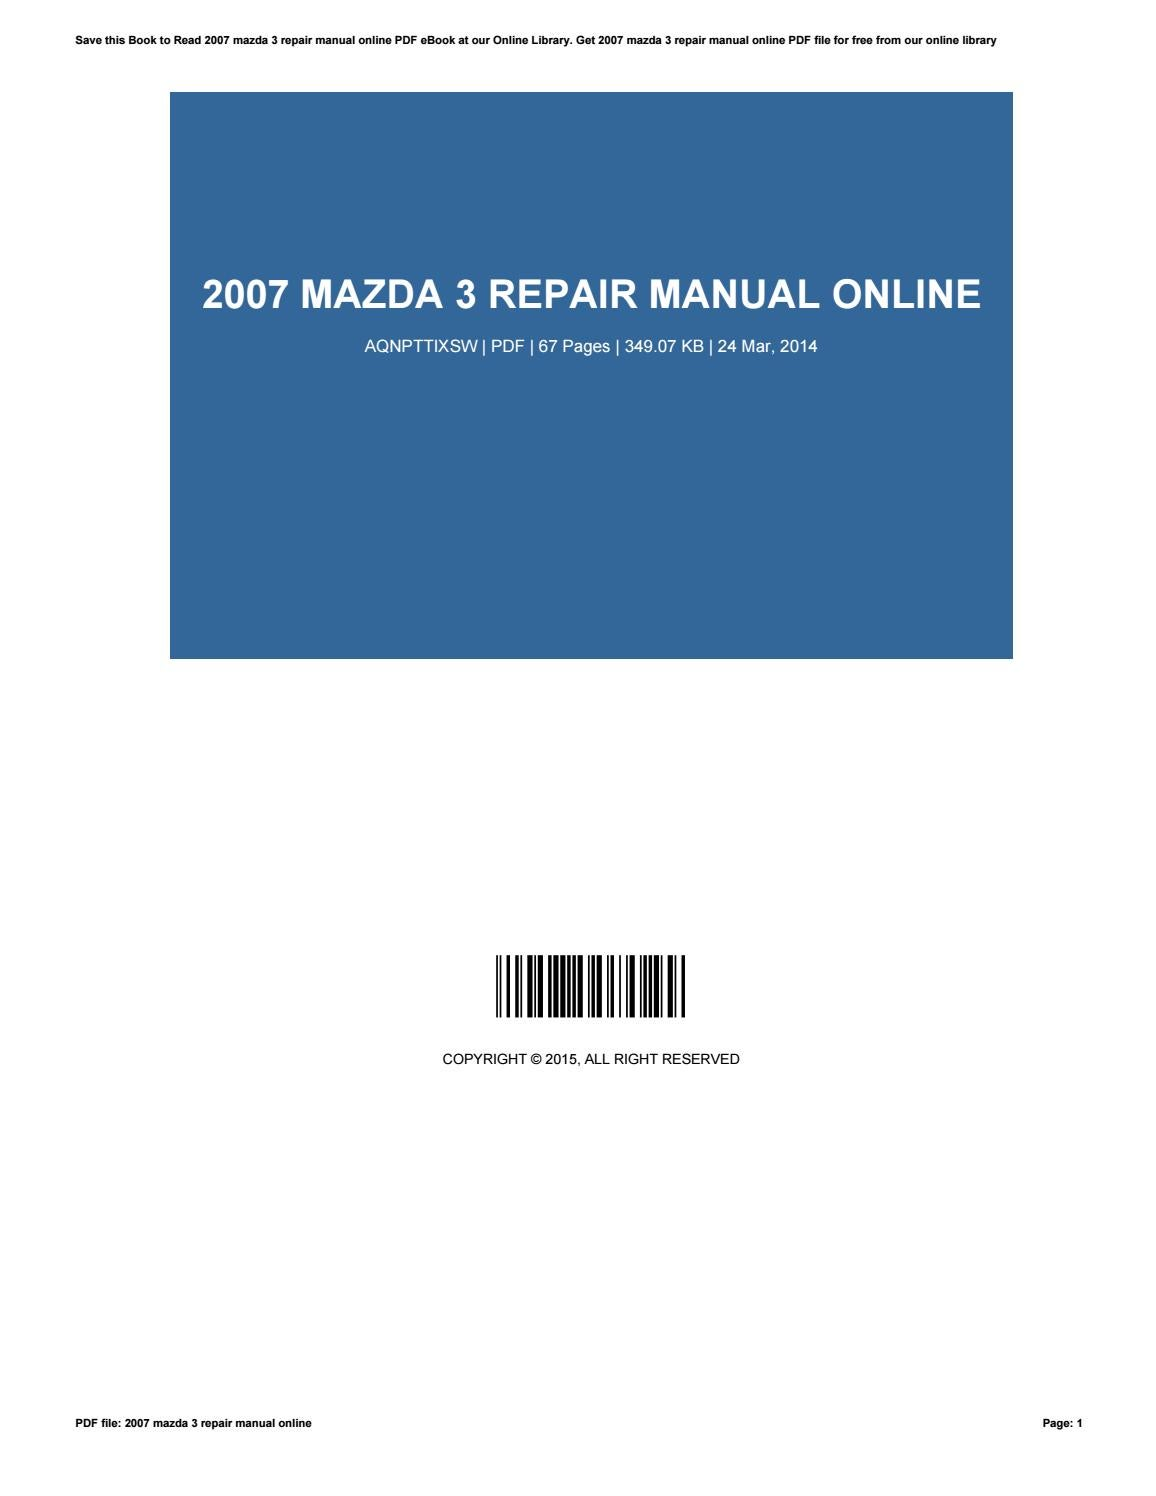 Mazda e2015 repair manual ebook array 2007 mazda 3 repair manual online by henrydenman3412 issuu rh issuu fandeluxe Images